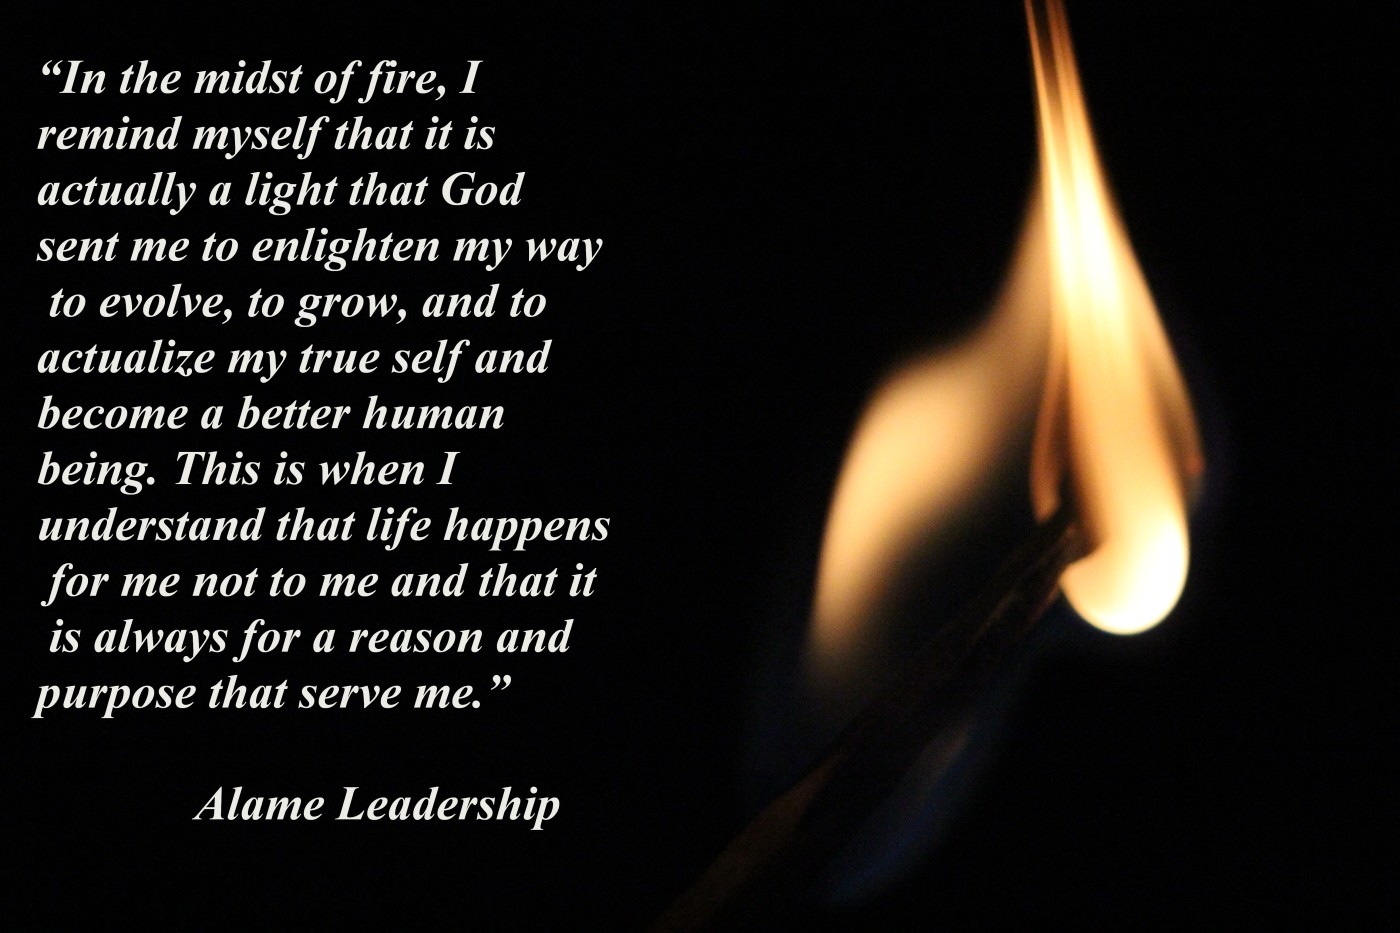 Famous Quotes About Life Al Inspiring Quote On Challenges In Life  Alame Leadership